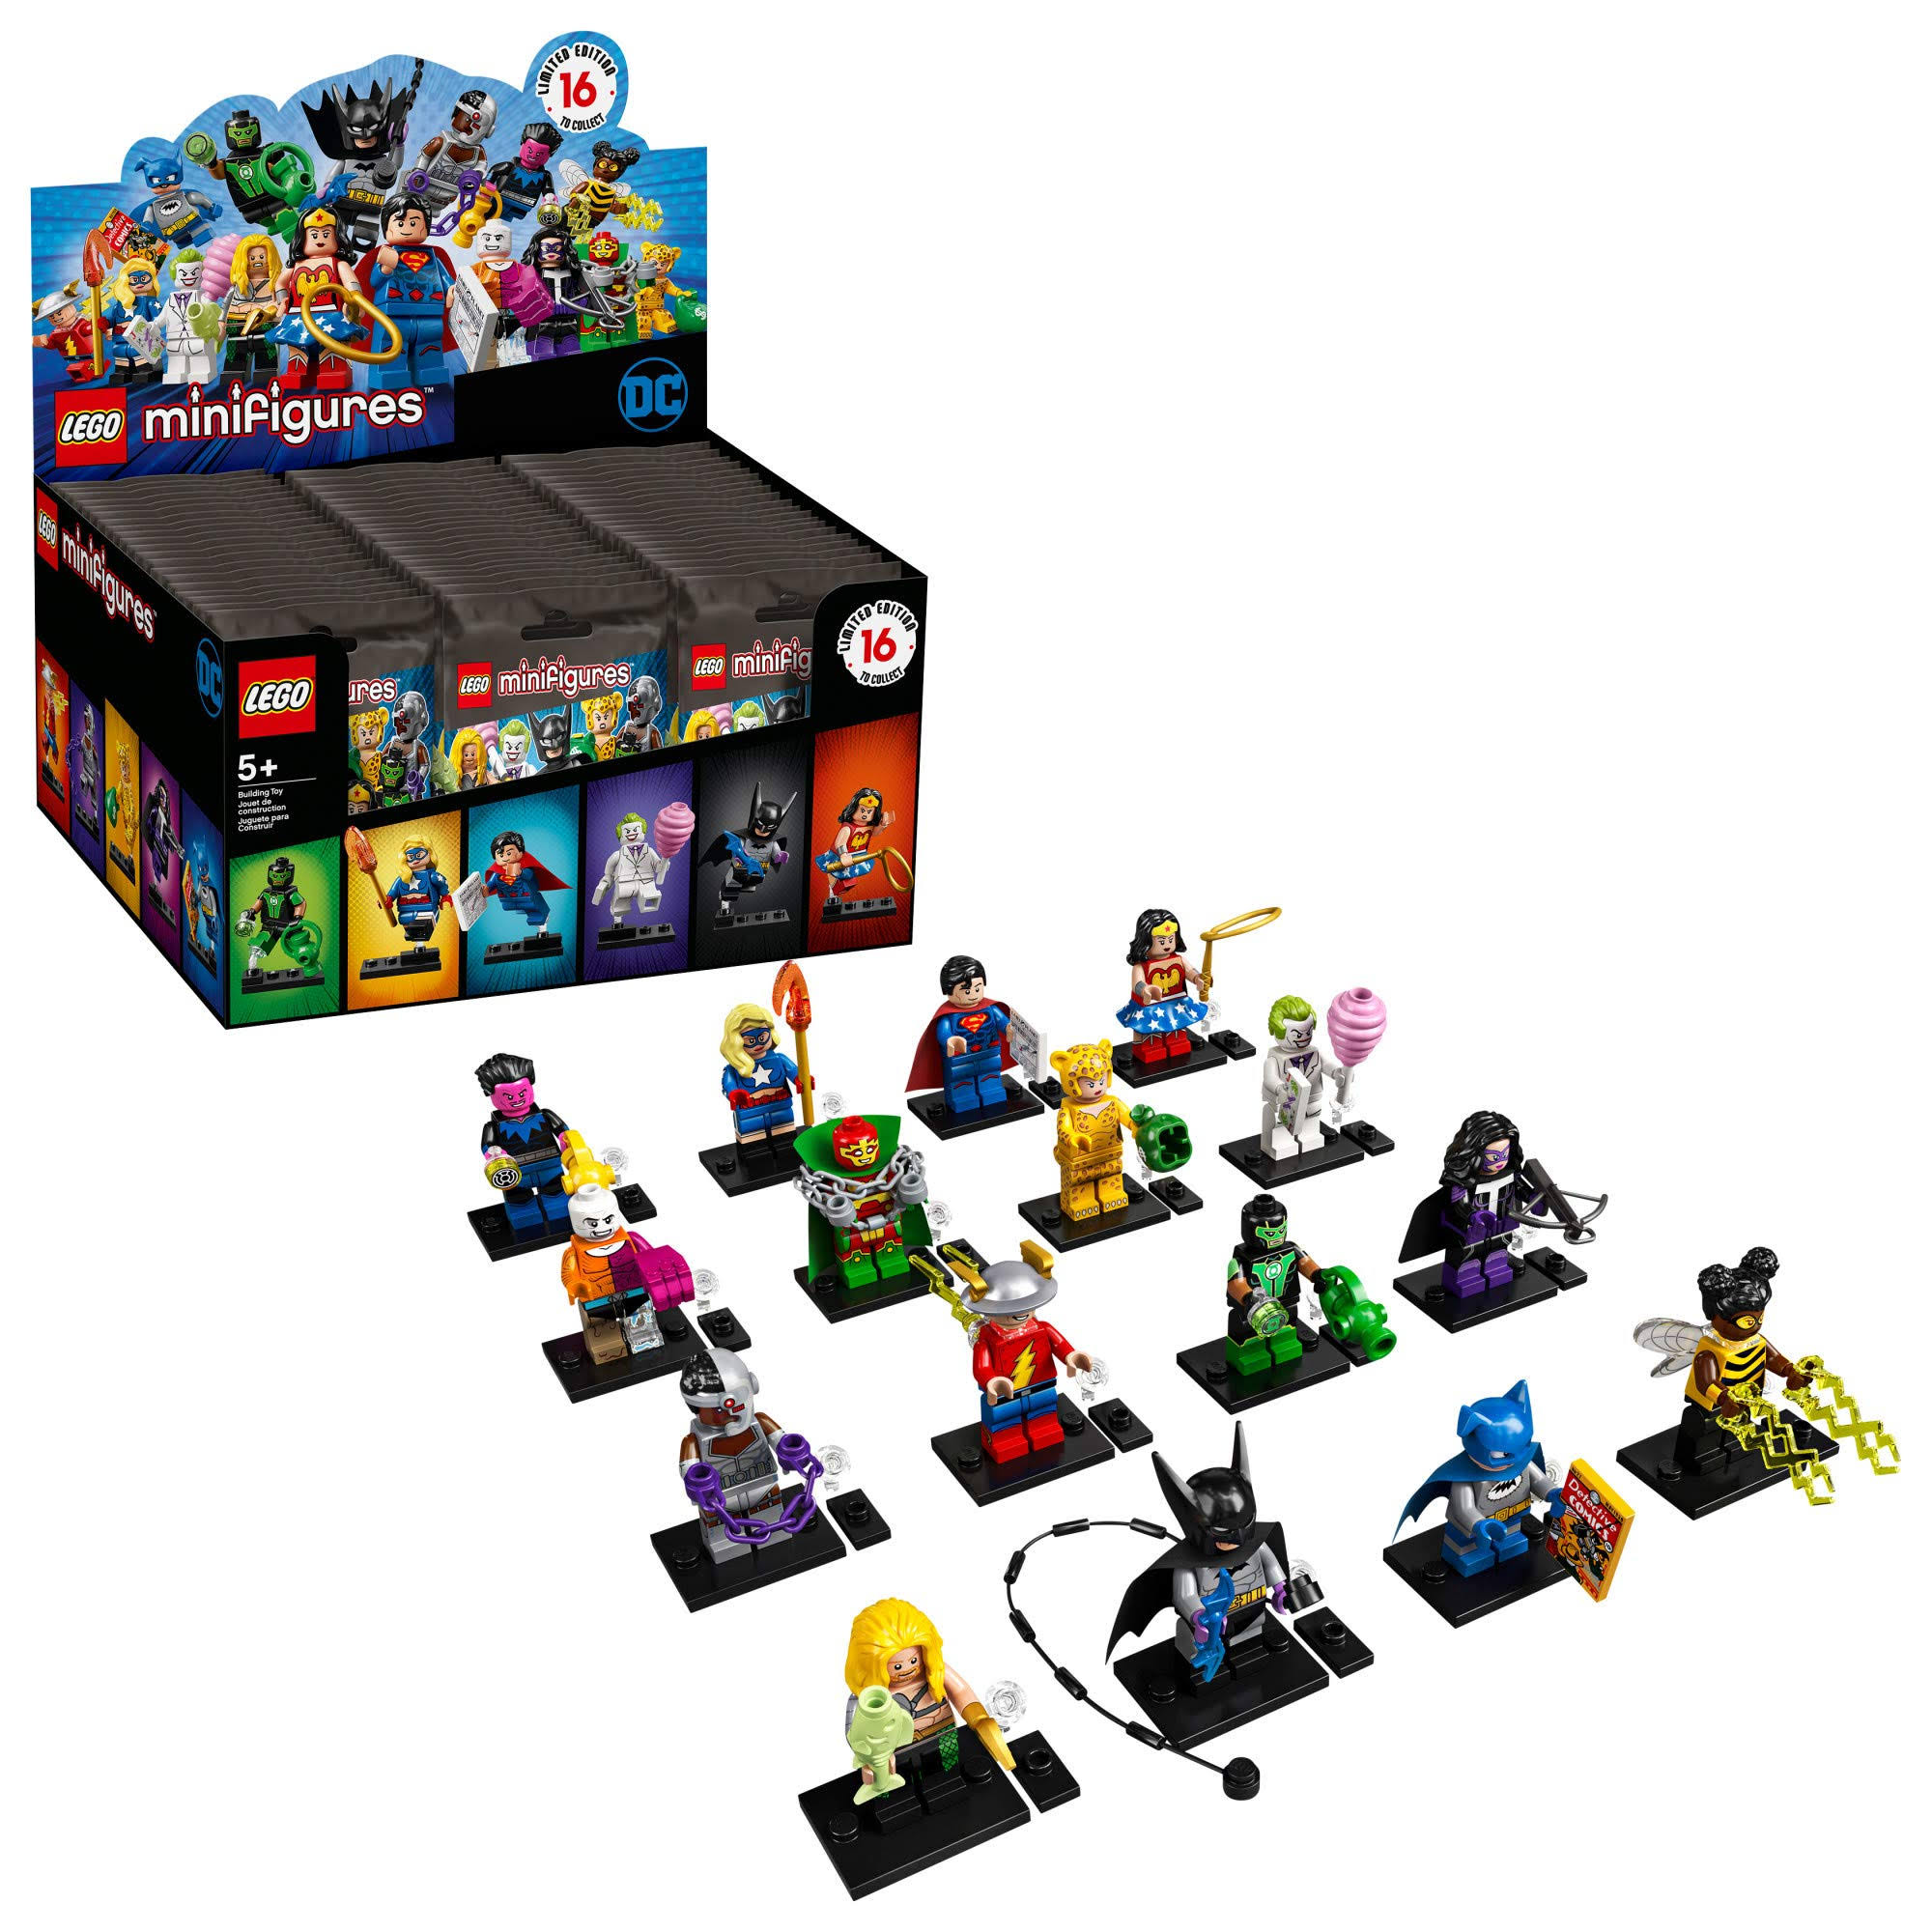 Lego DC Super Heroes Sealed Box Case Minifigures - 60ct